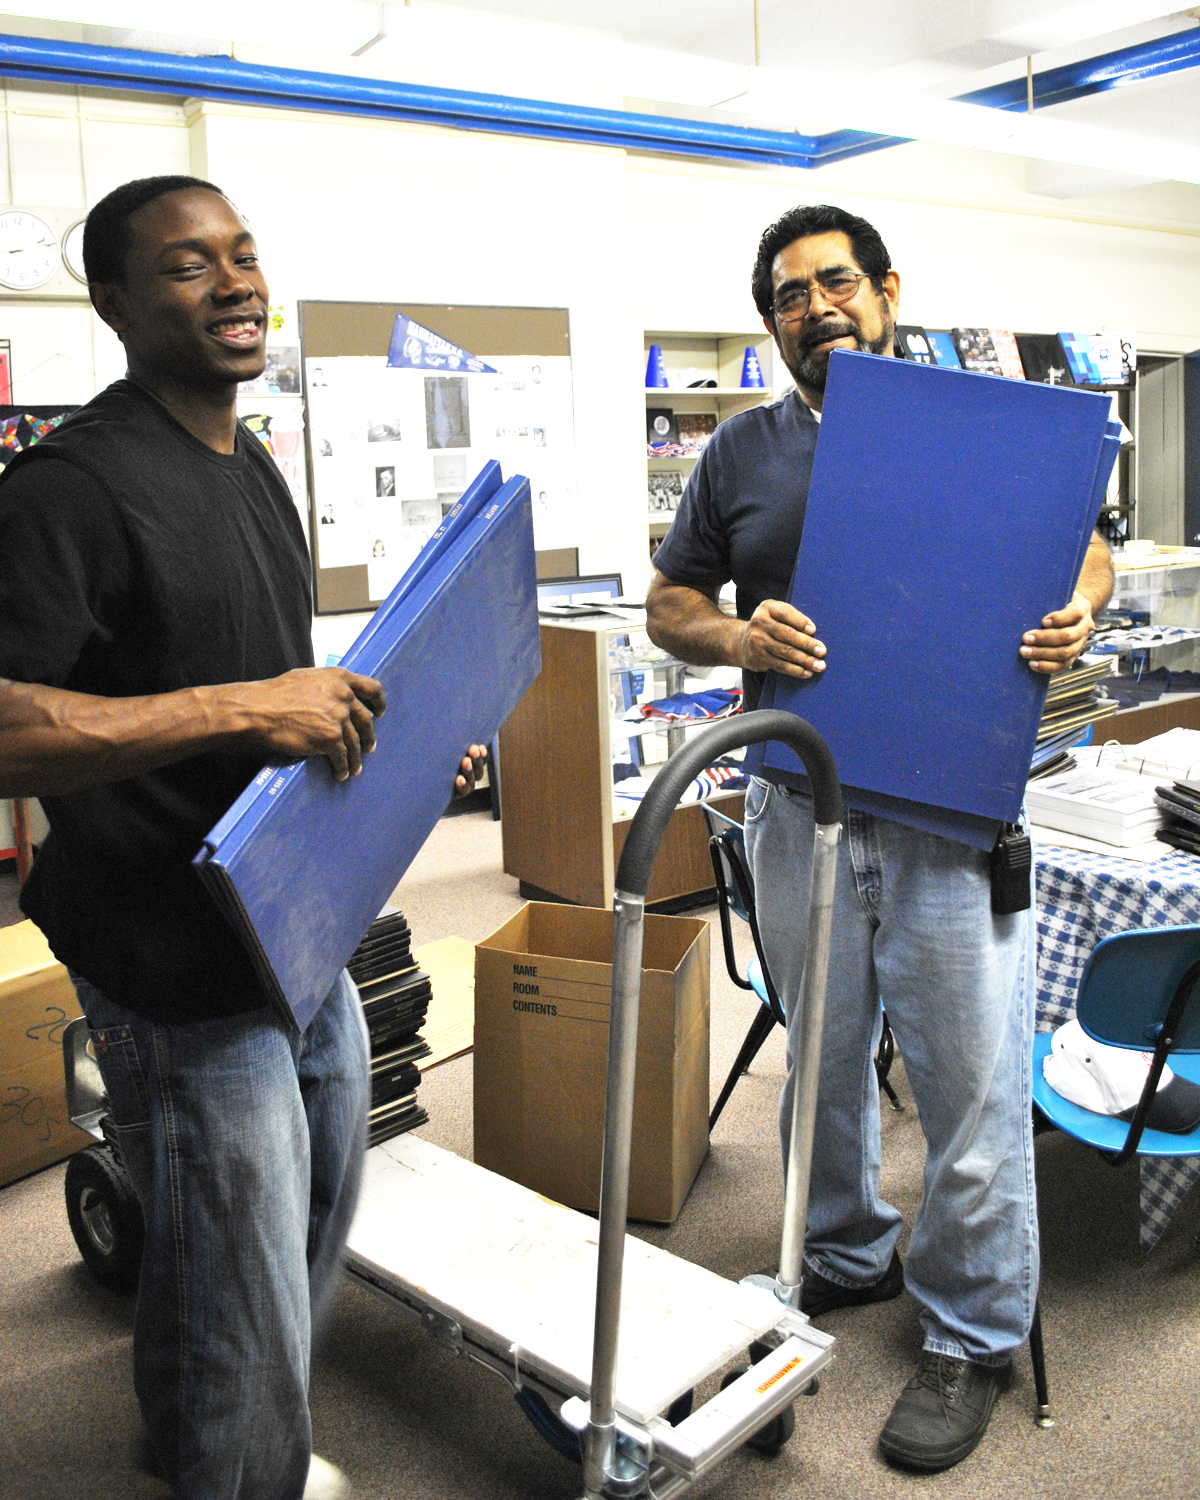 James Hoke and Carlos Gonzales unload bound Mentors they transported from MHS West to the Alumni Center.